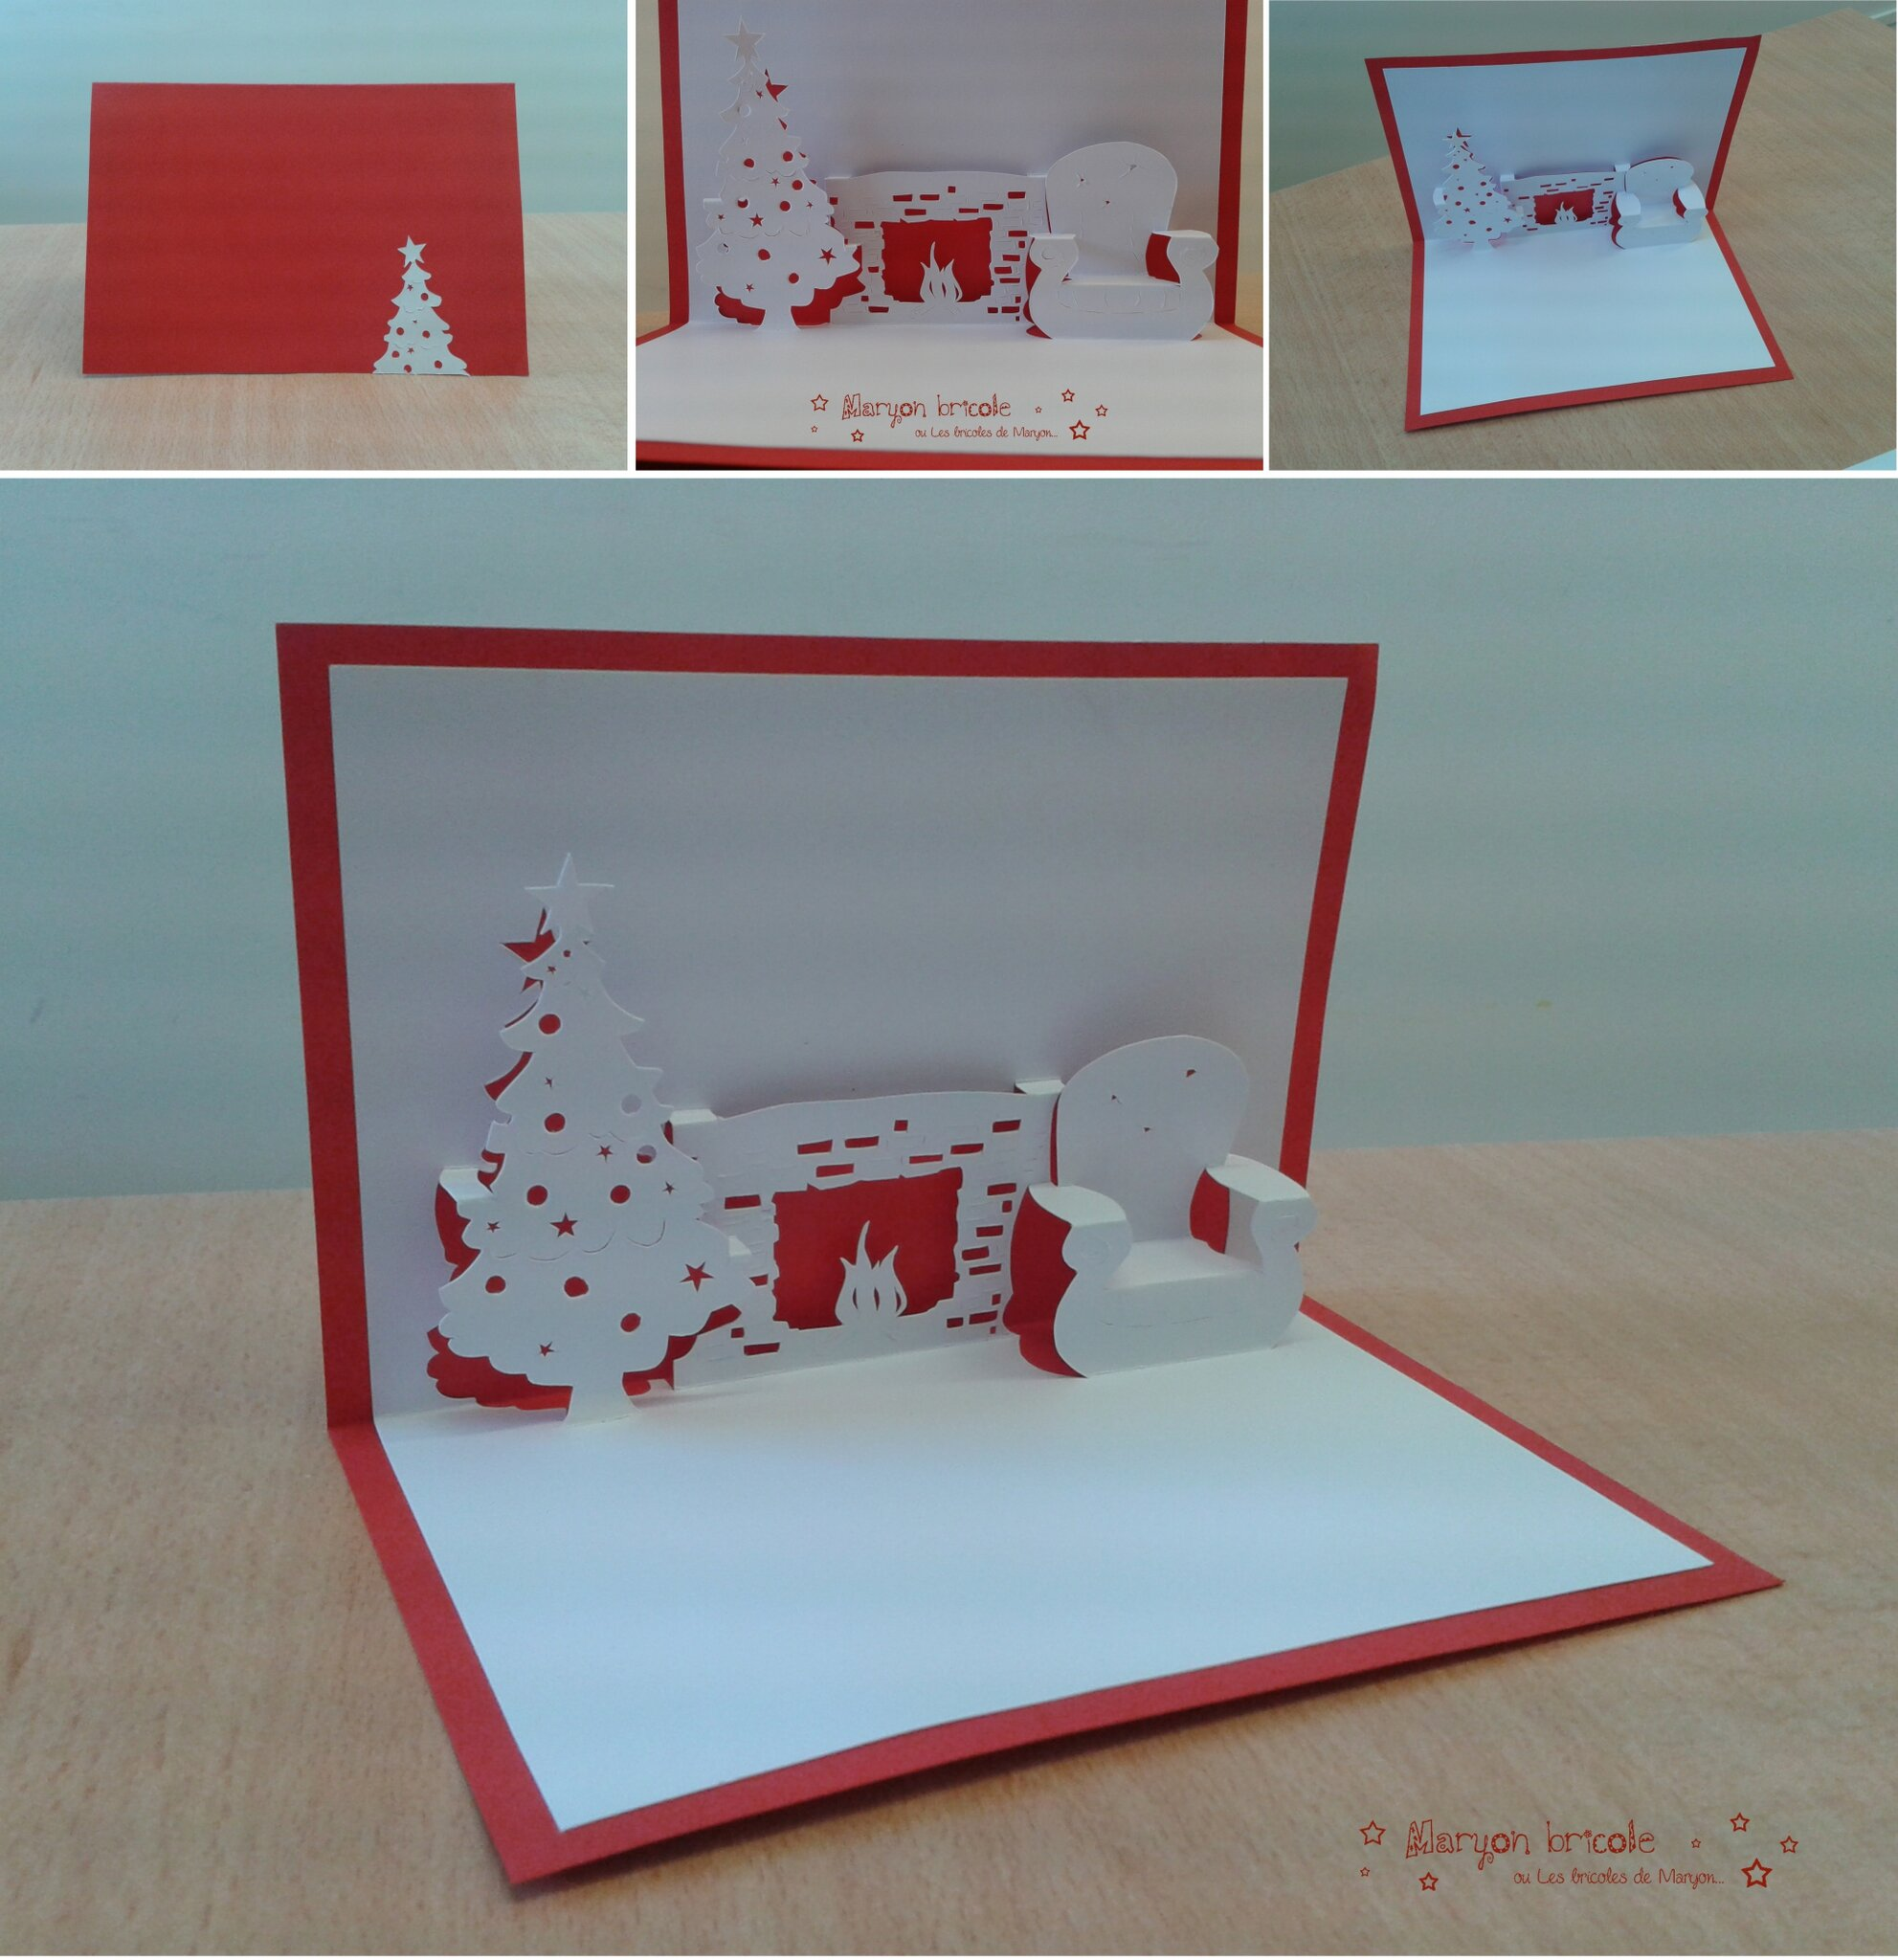 Cartes de voeux 3d pop up tous les messages sur cartes de voeux 3d pop up page 2 - Carte de voeux pop up ...